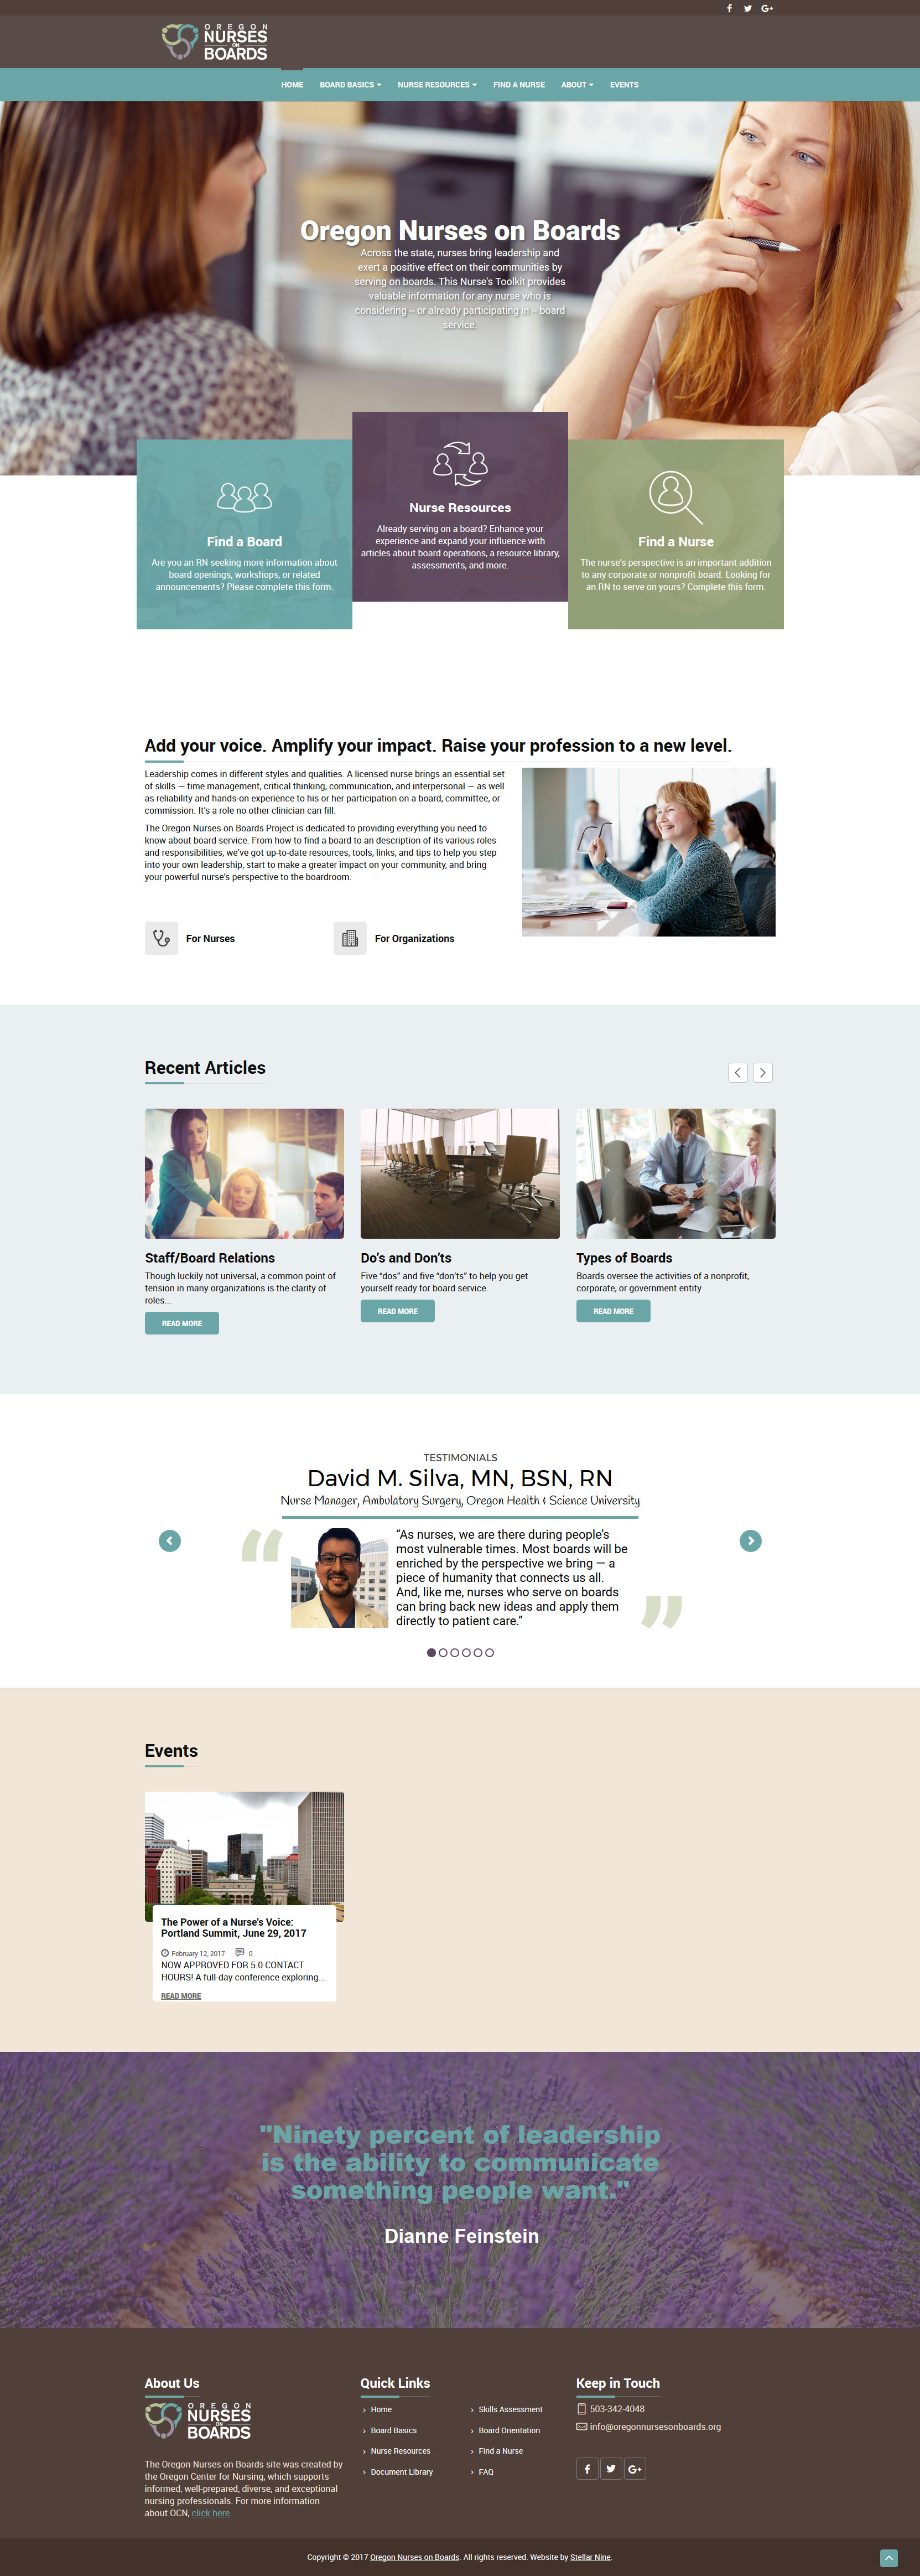 Responsive Website Design for the Oregon Nurses on Boards